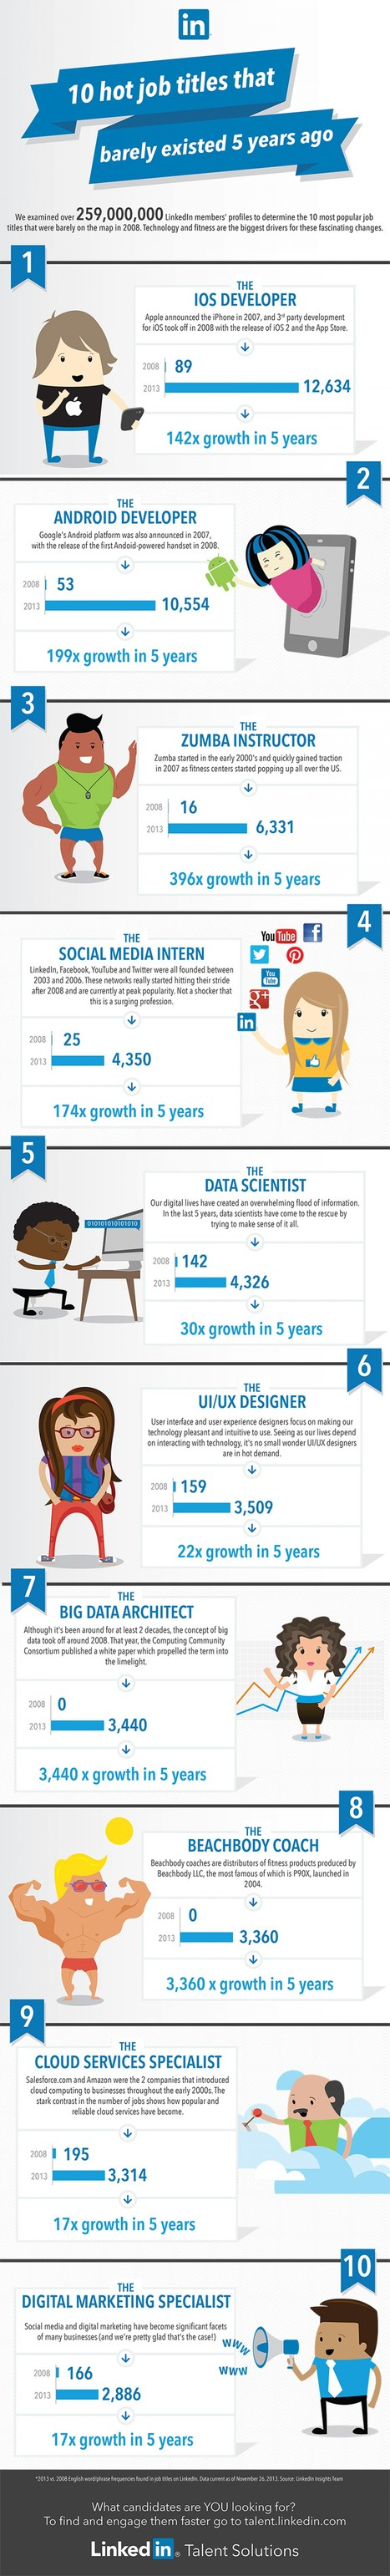 Top 10 Job Titles That Didn't Exist 5 Years Ago (Infographic) | Perception | Scoop.it